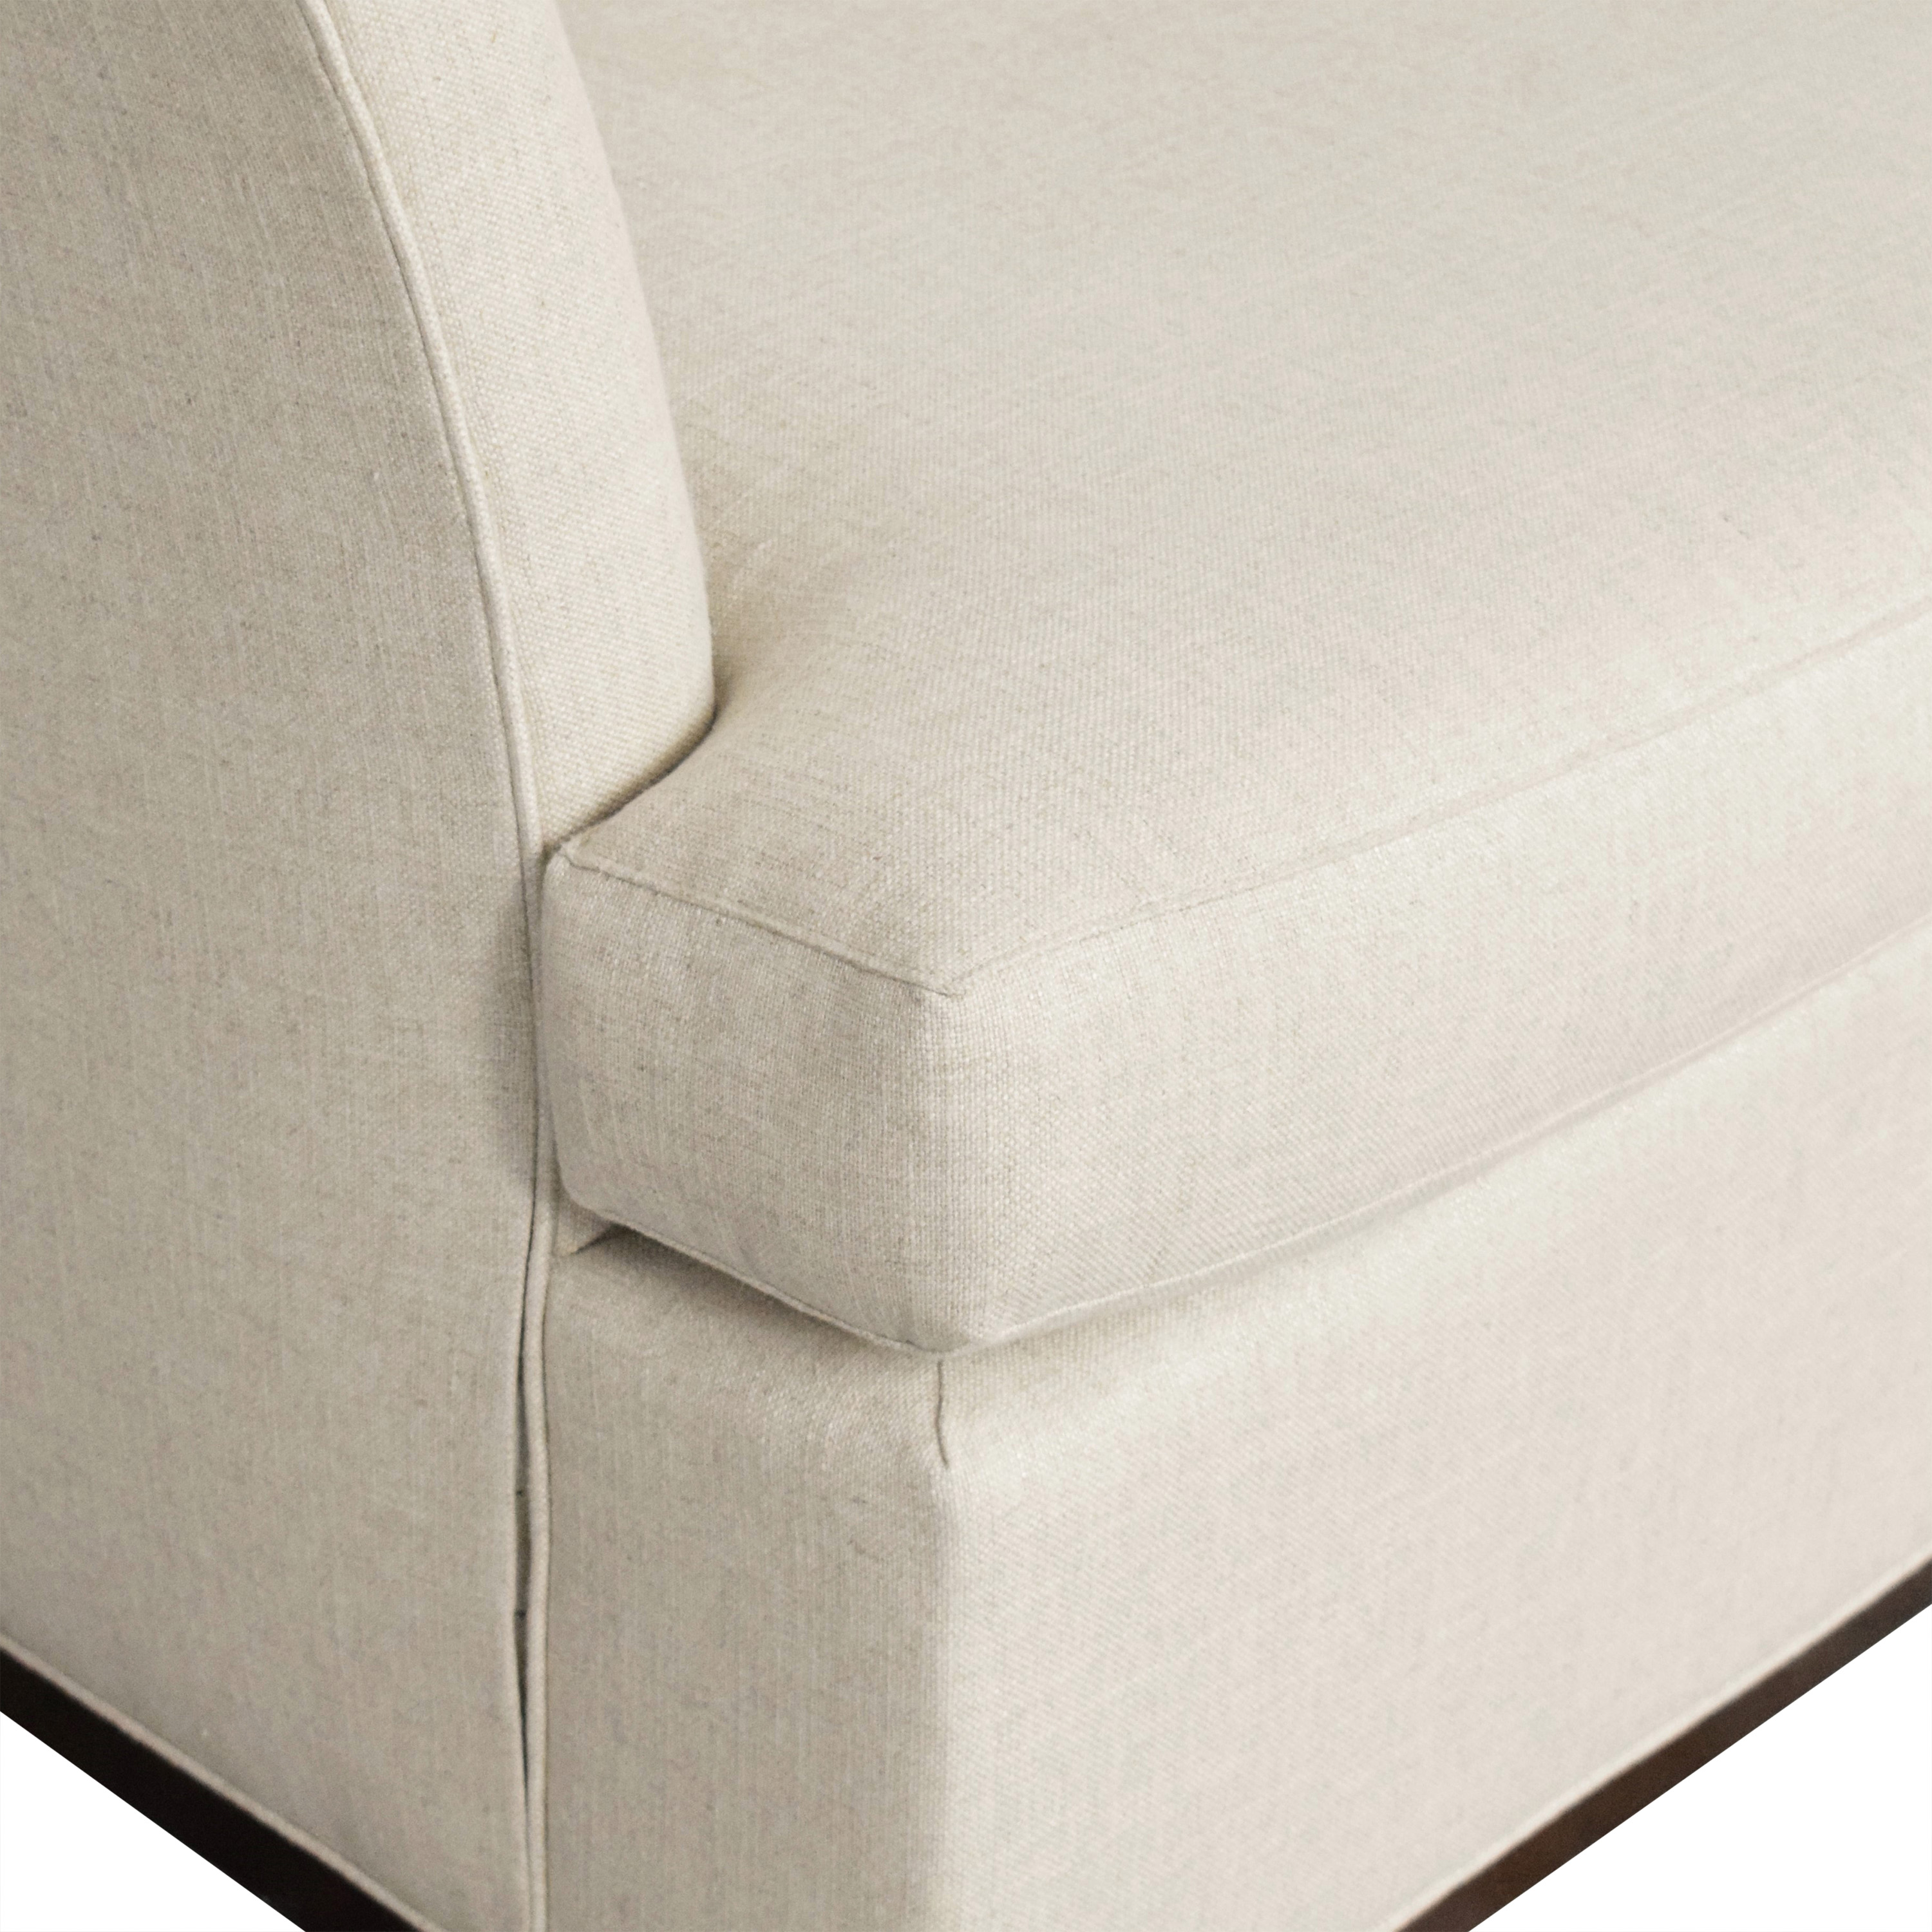 Vanguard Furniture Millington Chaise by Micheal Weiss sale